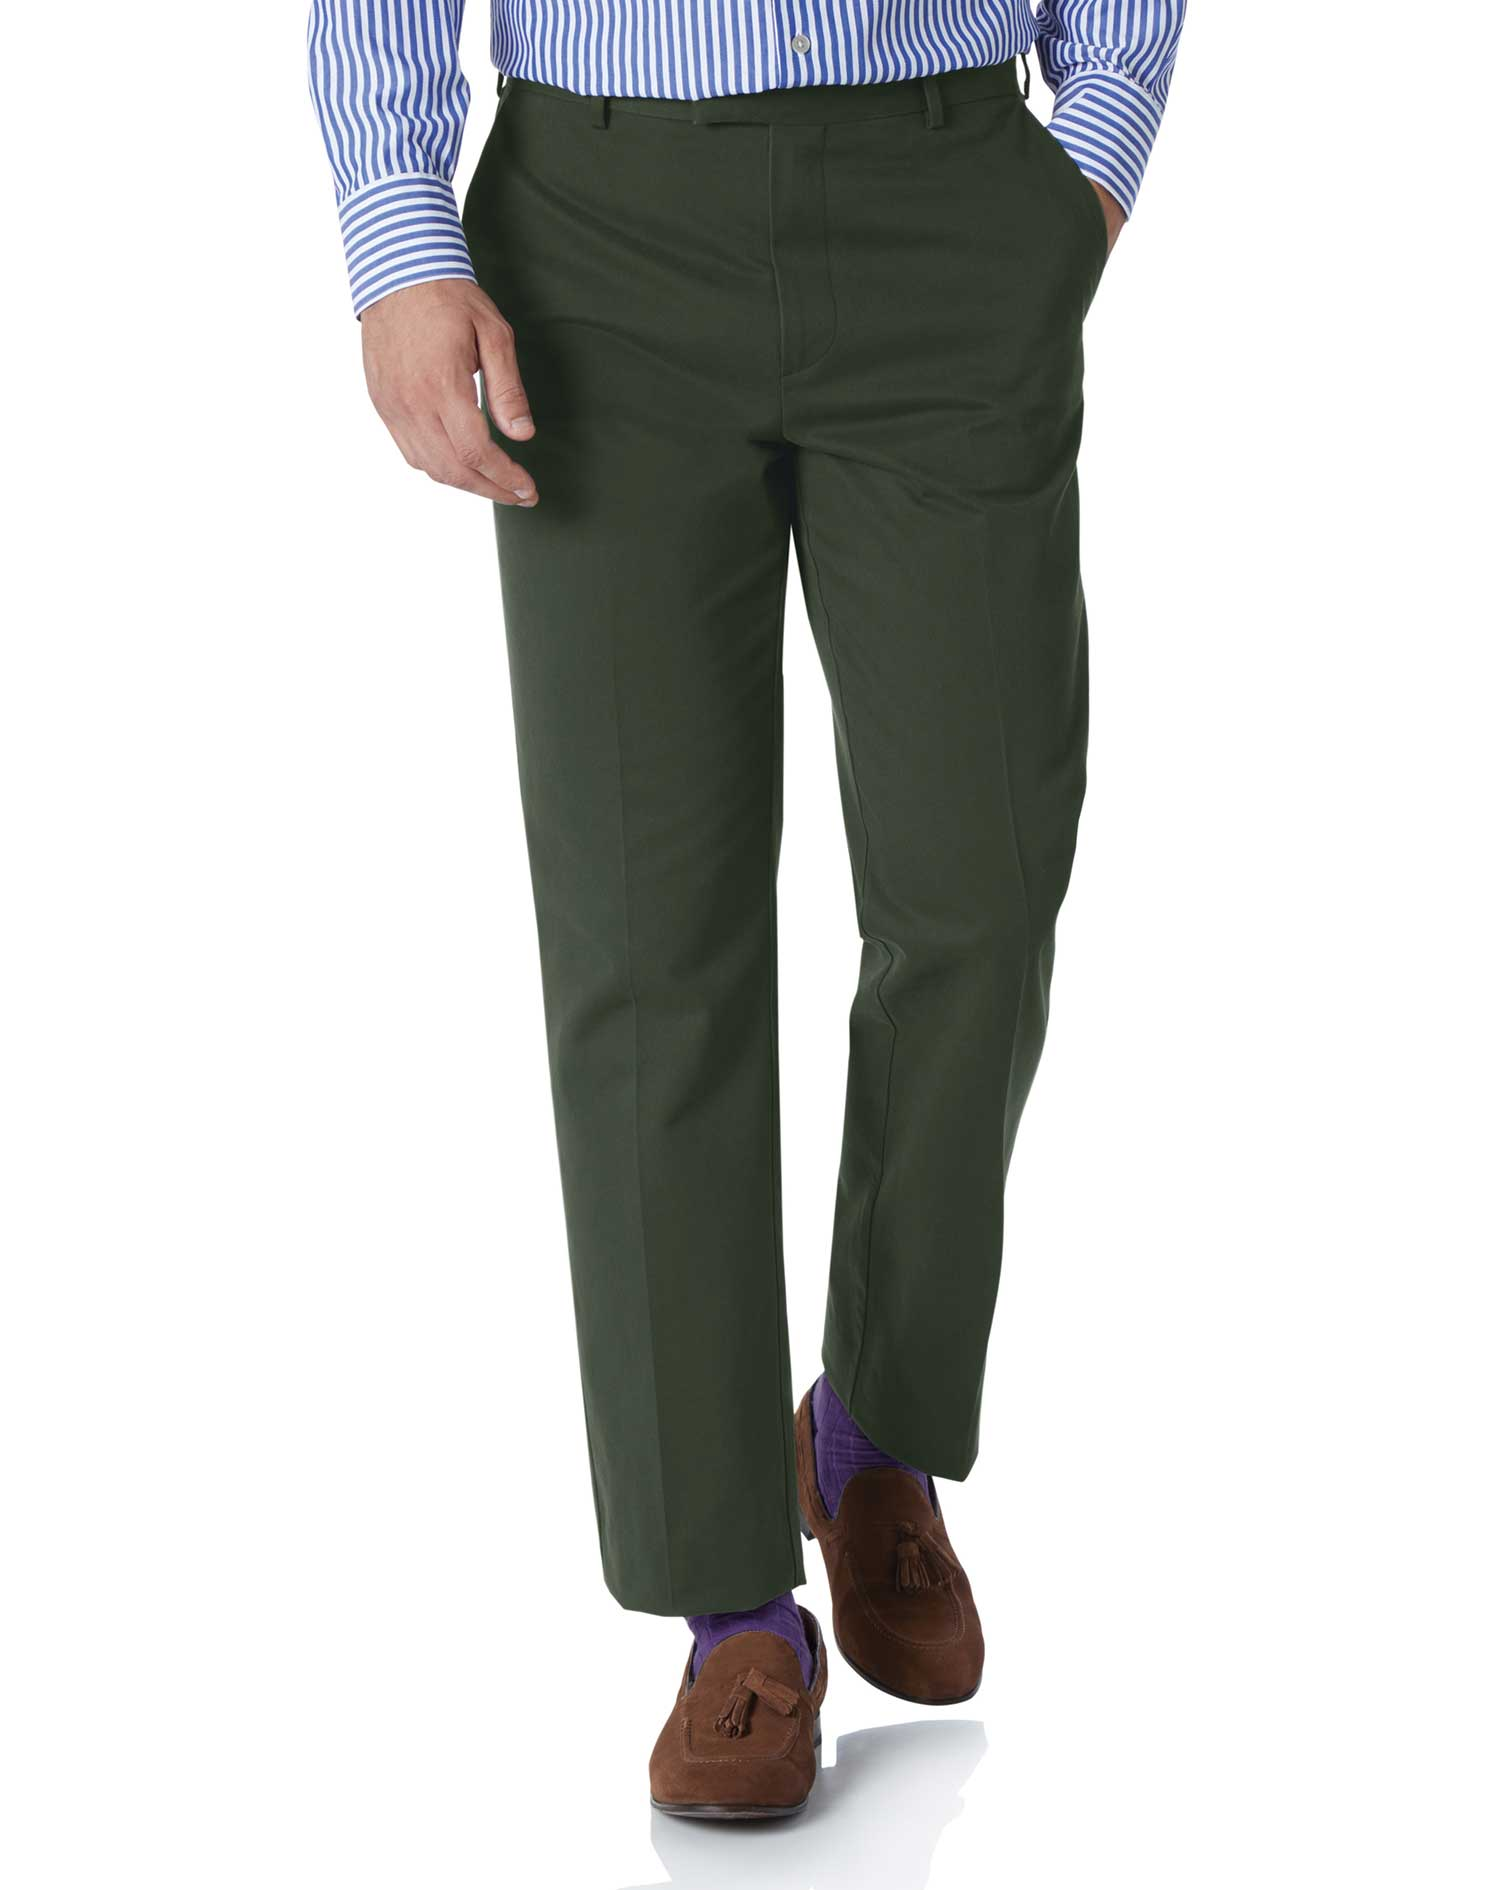 Dark Green Classic Fit Flat Front Non-Iron Cotton Chino Trousers Size W32 L32 by Charles Tyrwhitt